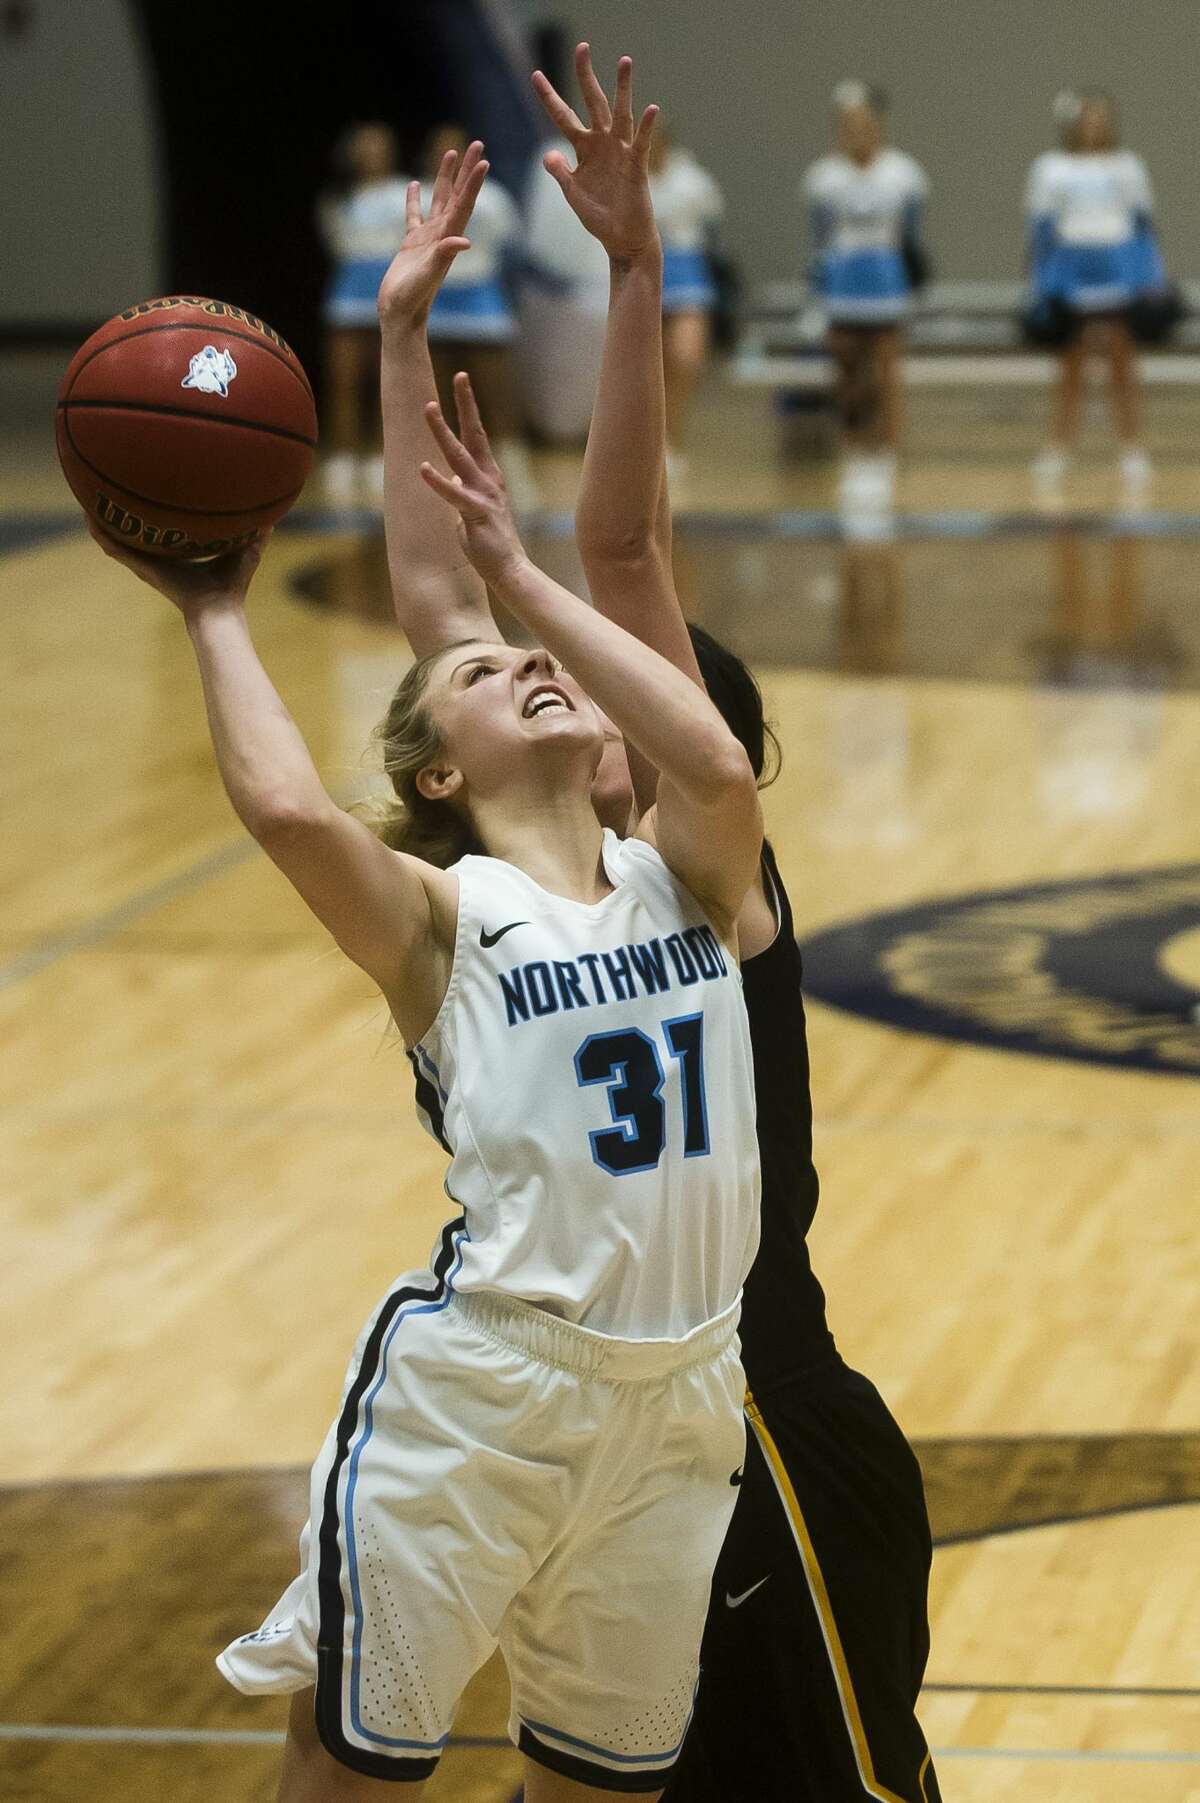 Northwood's Maddy Seeley takes a shot during the Timberwolves' game against Michigan Tech on Saturday, Feb. 10, 2018 at Northwood University. (Katy Kildee/kkildee@mdn.net)